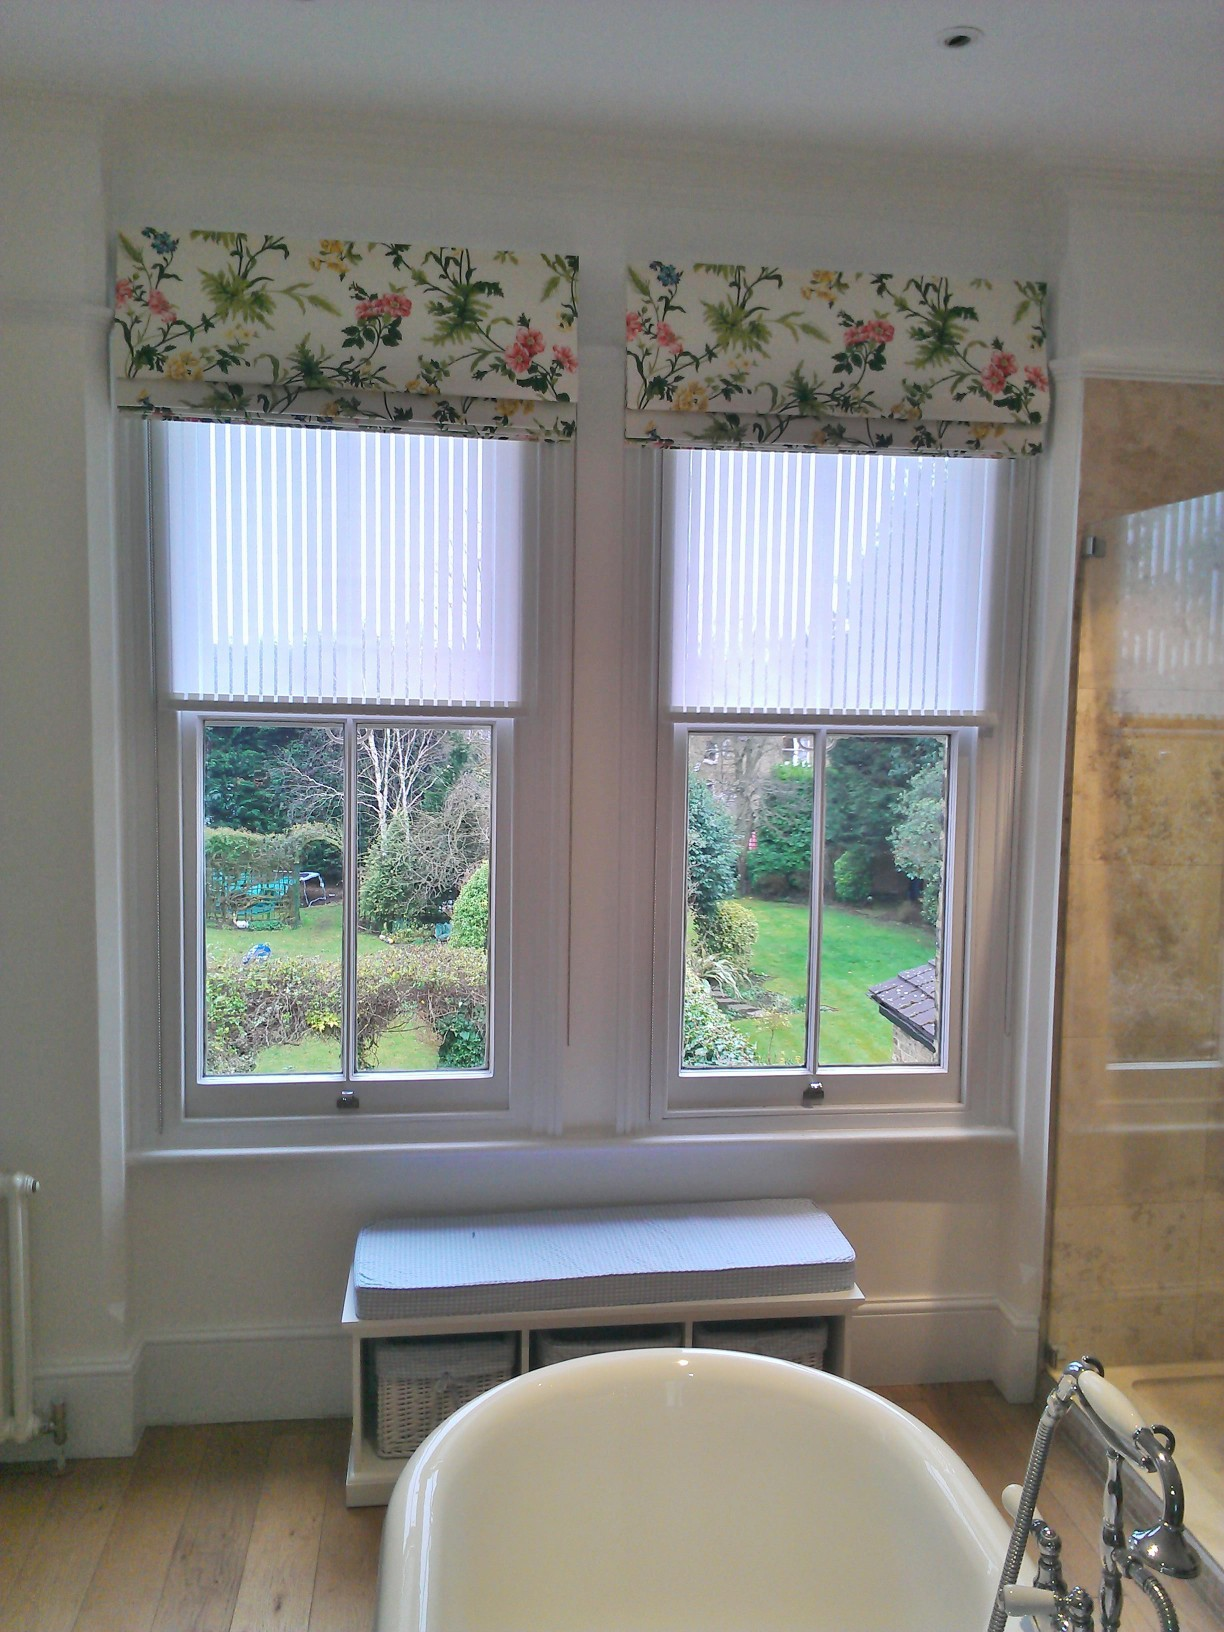 Bathroom blinds k k curtains for Blinds bathroom window